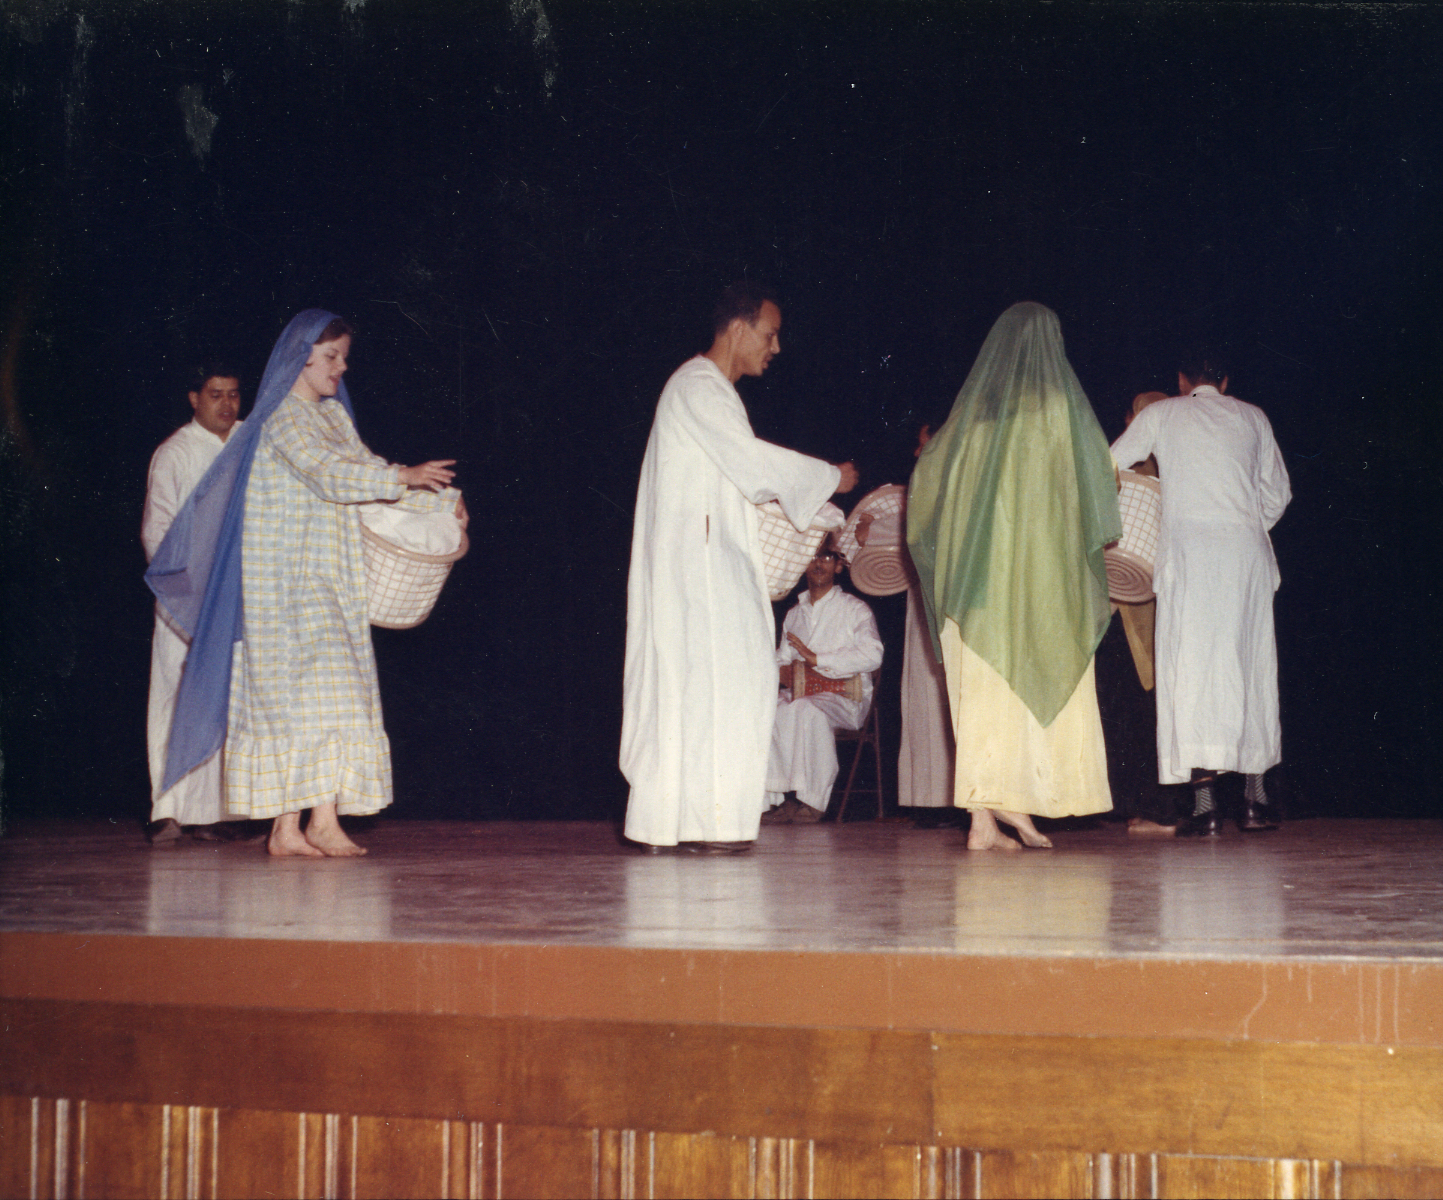 Arab Club performance at the International Festival, 1966